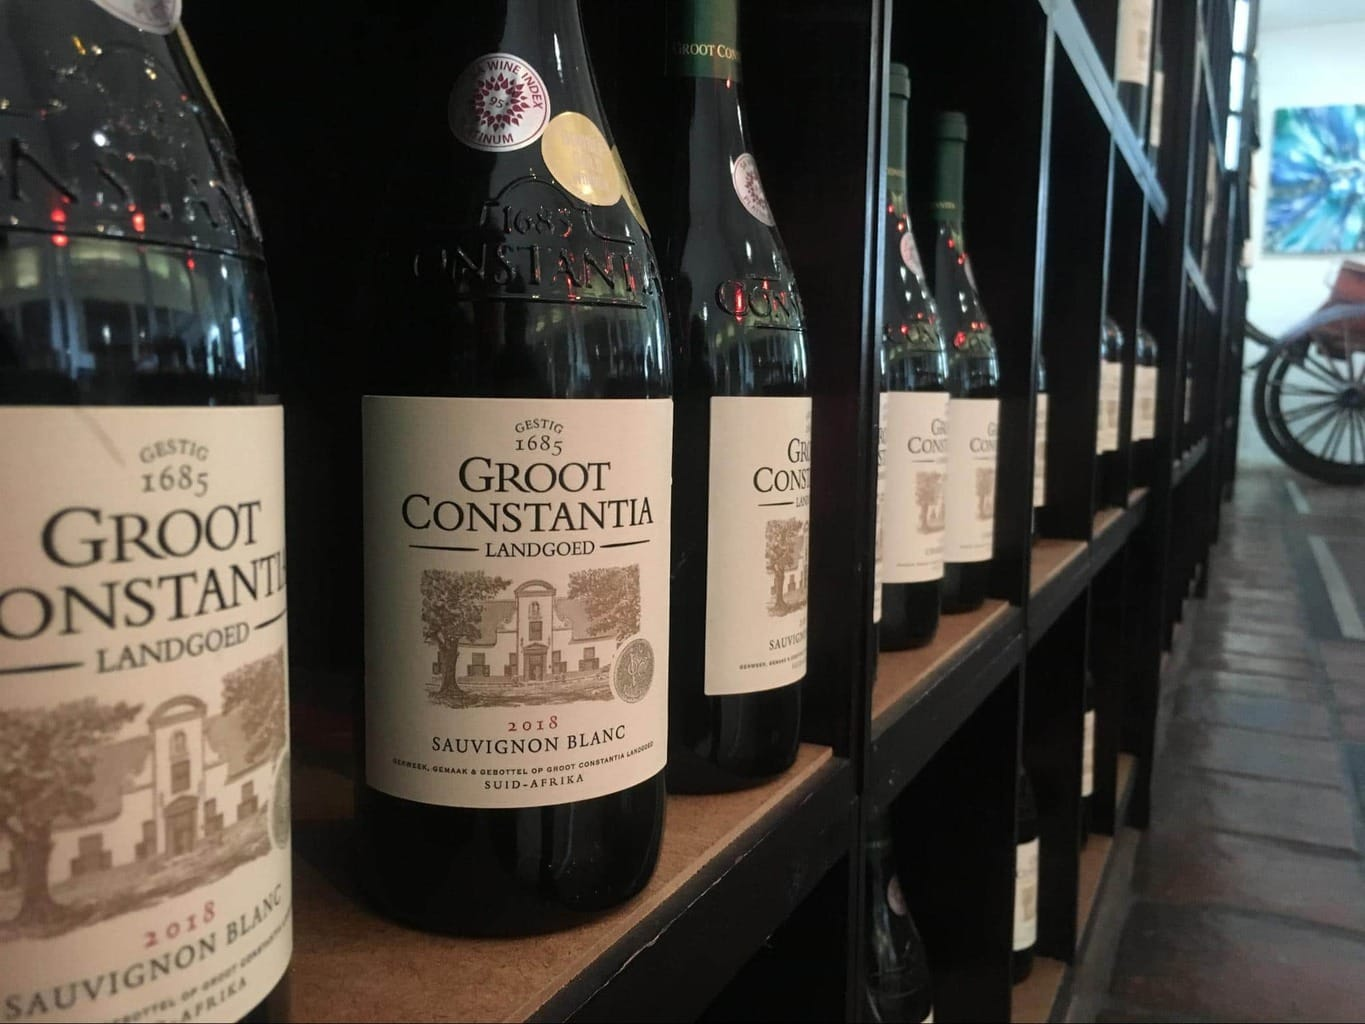 Groot Constantia is the oldest winery in the country